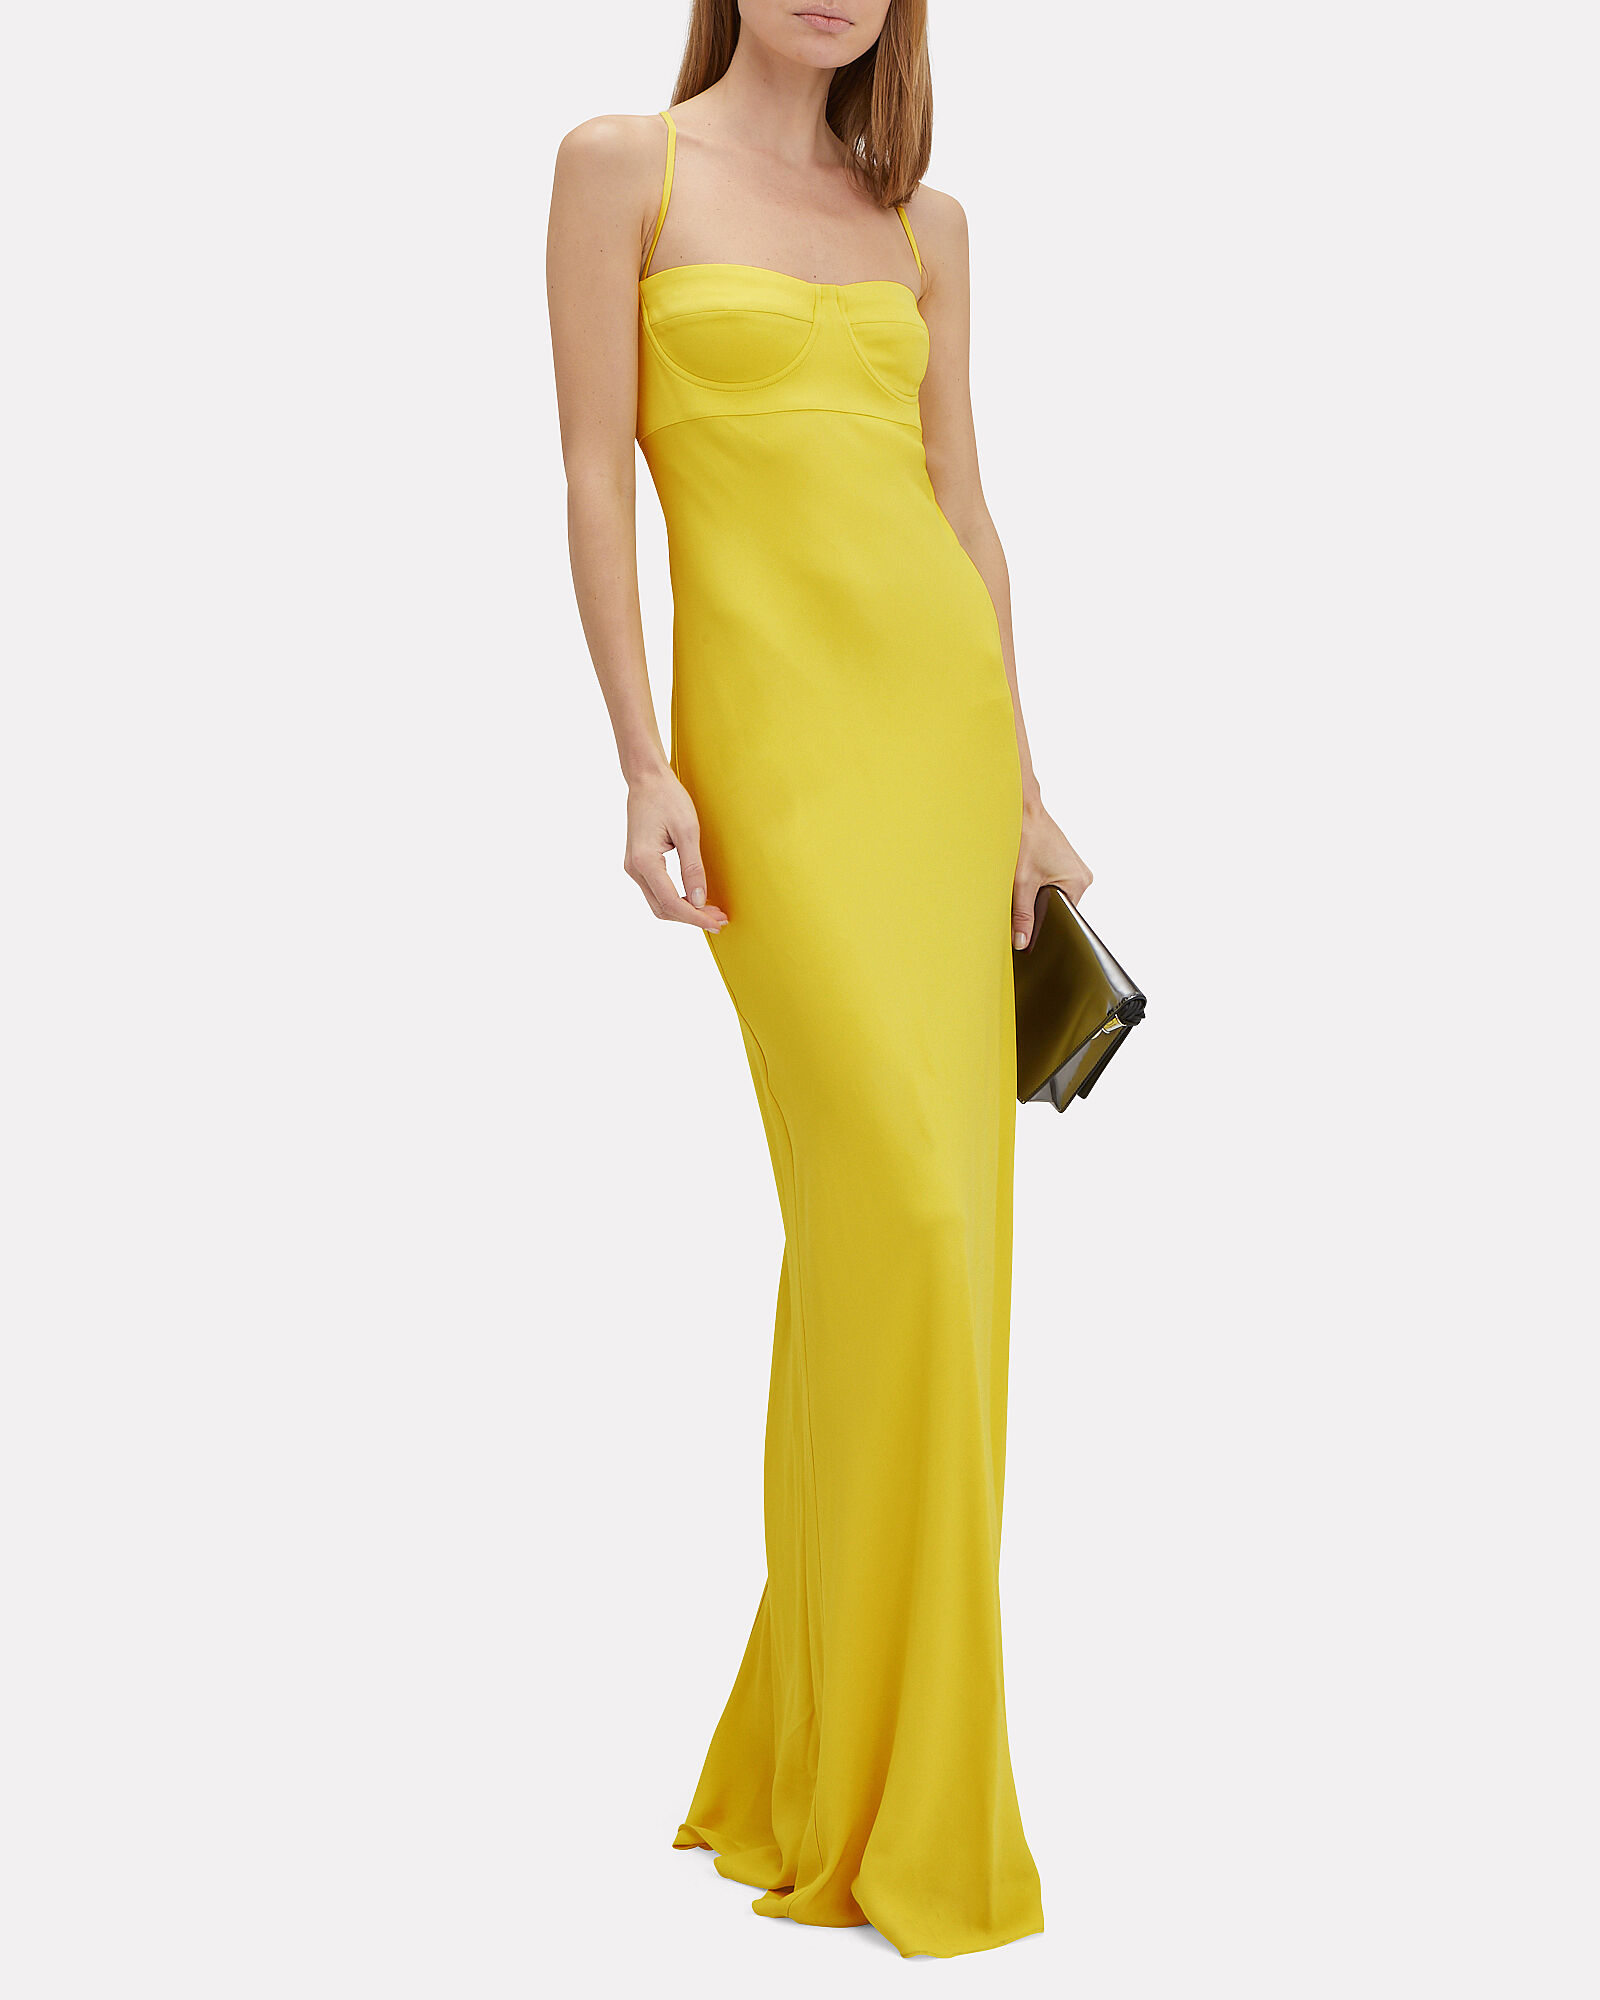 Crepe Suiting Bustier Gown, YELLOW, hi-res